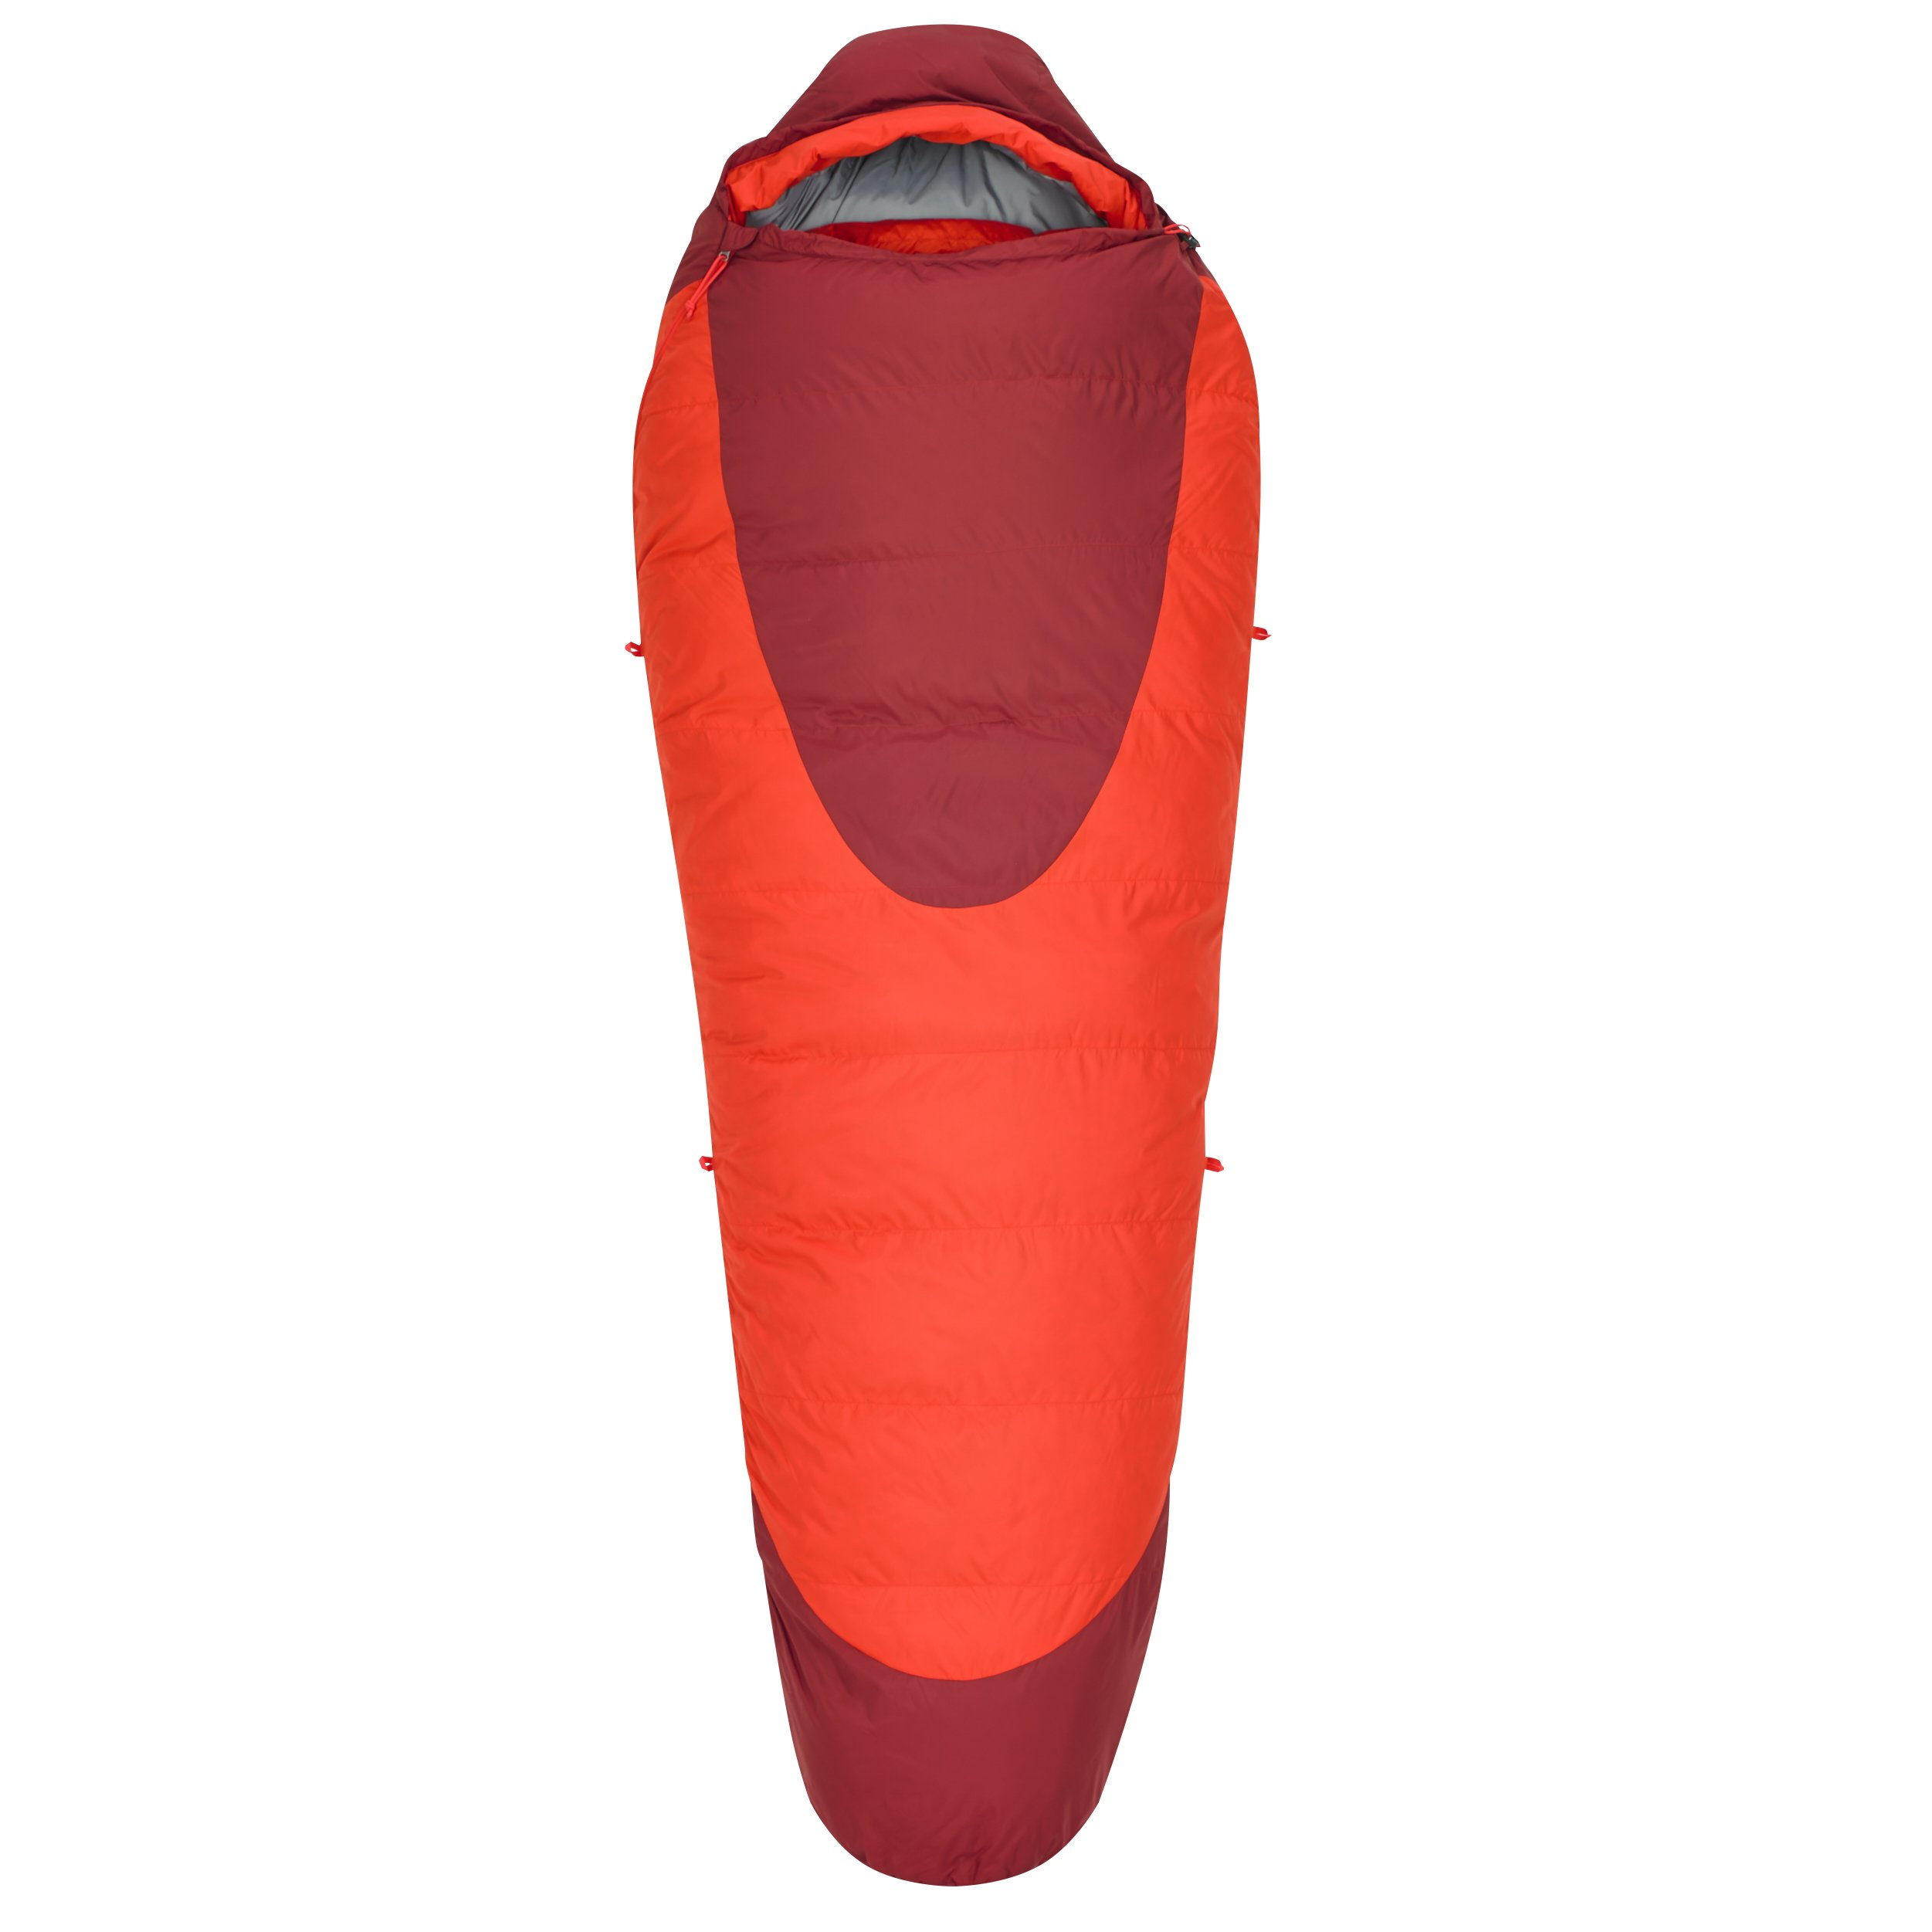 Kelty Cosmic 0 Degree Sleeping Bag, Regular, Fiery Red/Garnet by Kelty (Image #2)